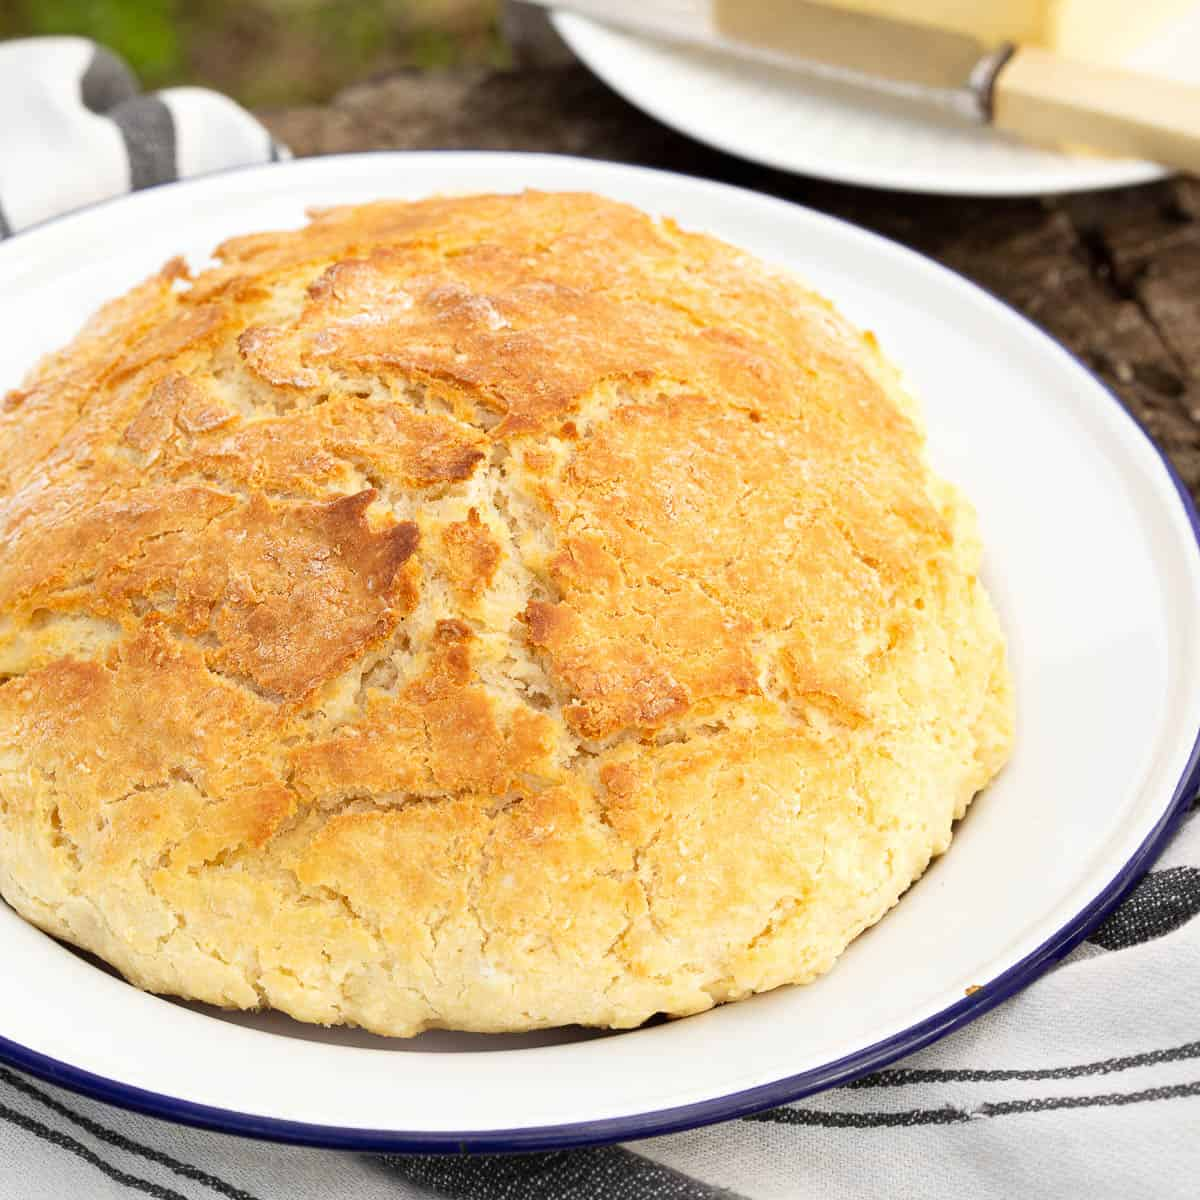 Fresh damper bread on a blue and white plate.